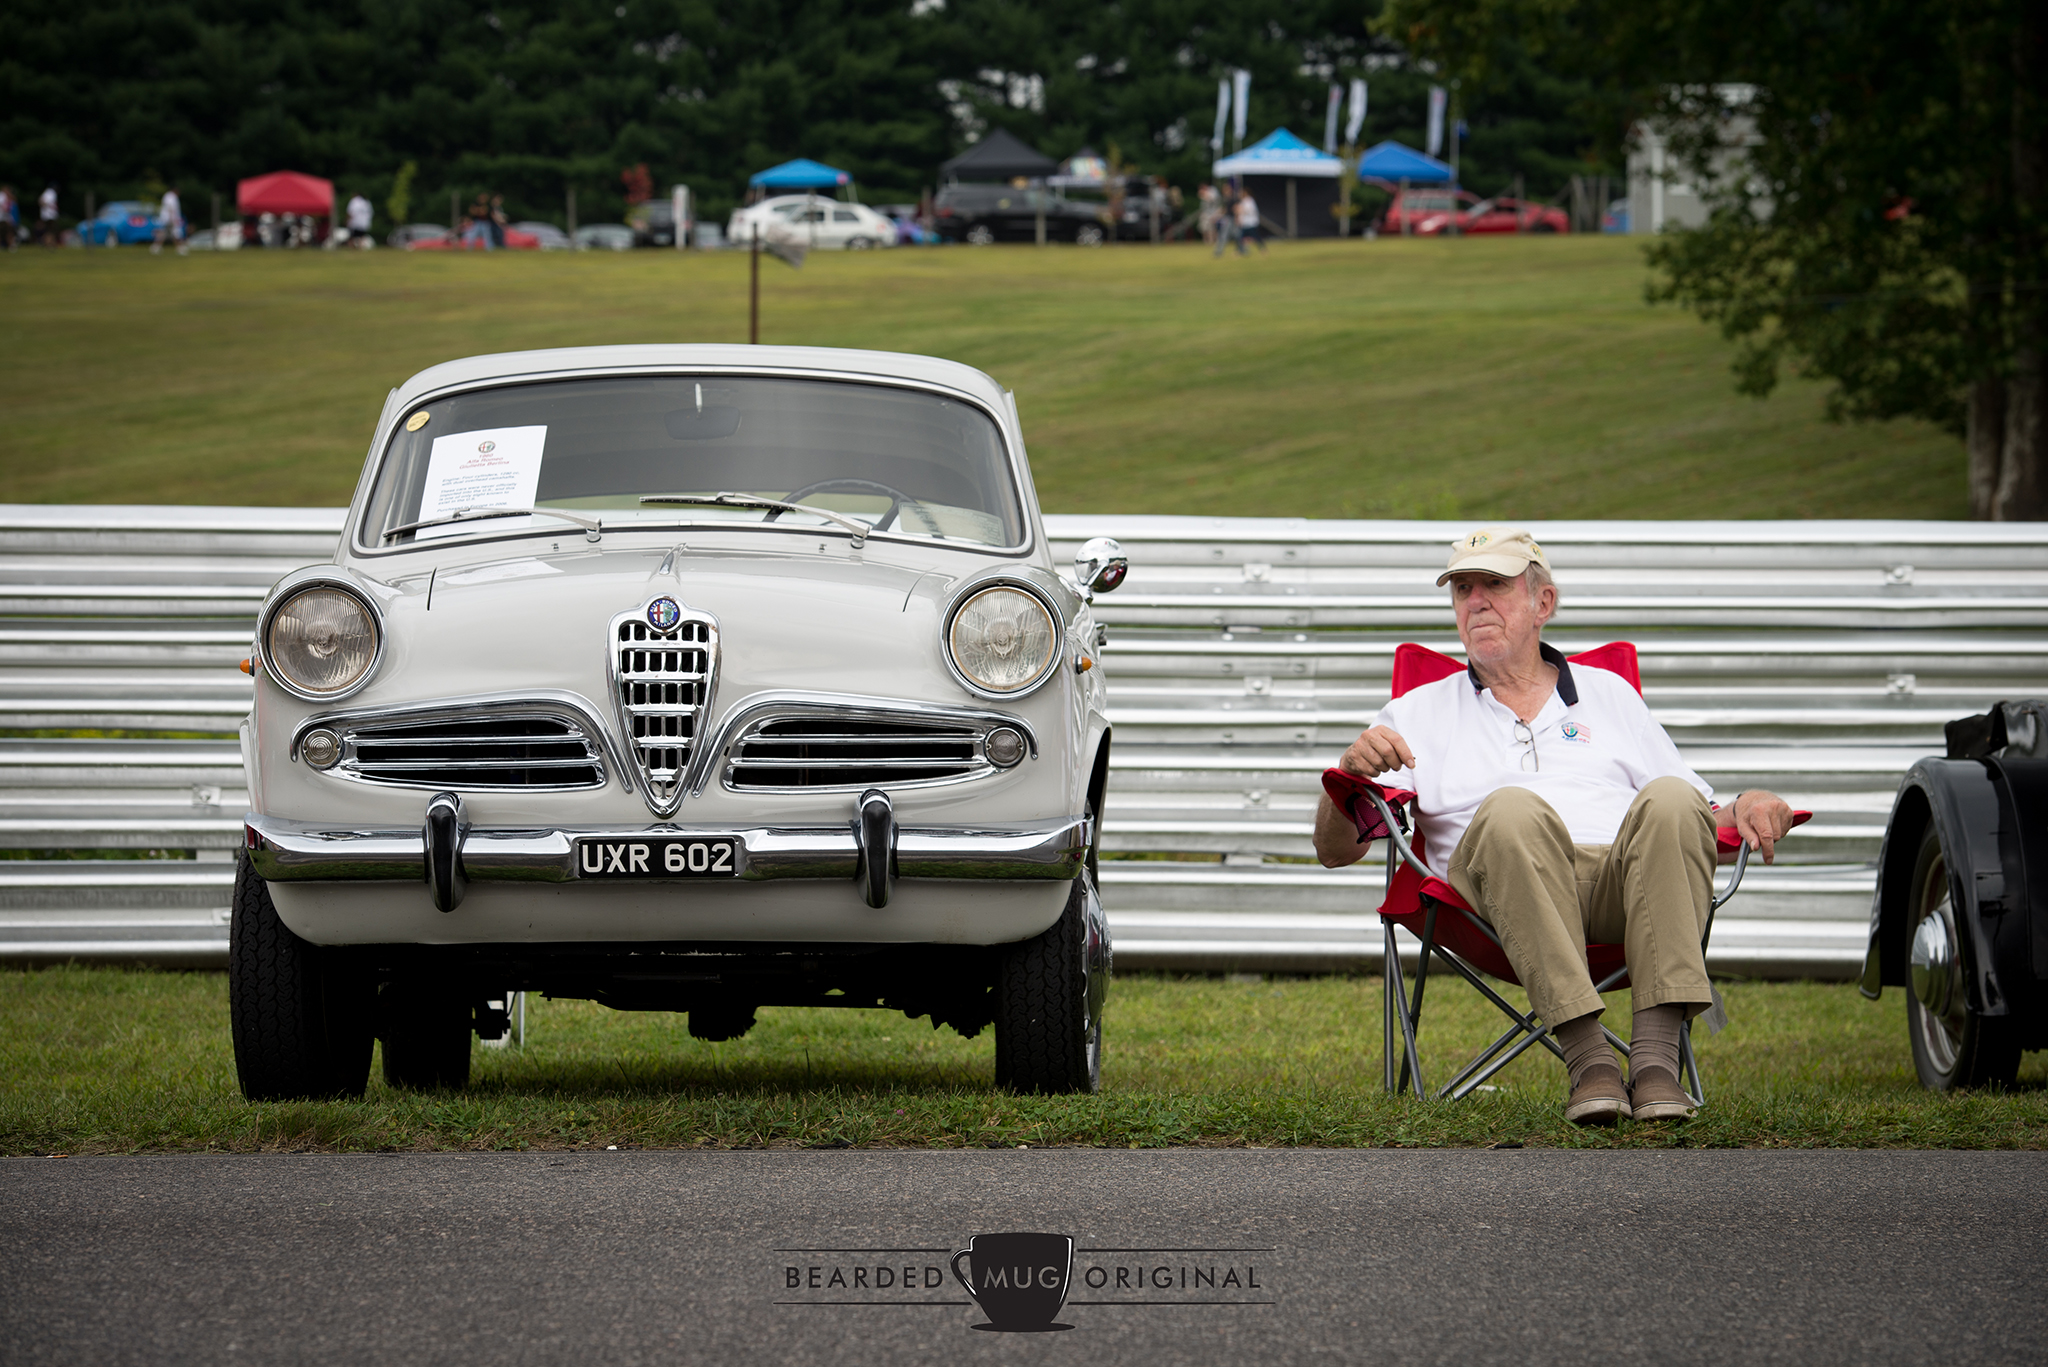 The presumed owner of this 1960 Alfa Romeo Giulietta Berlina enjoys a relaxing bit of time next a all-original Italian classic.